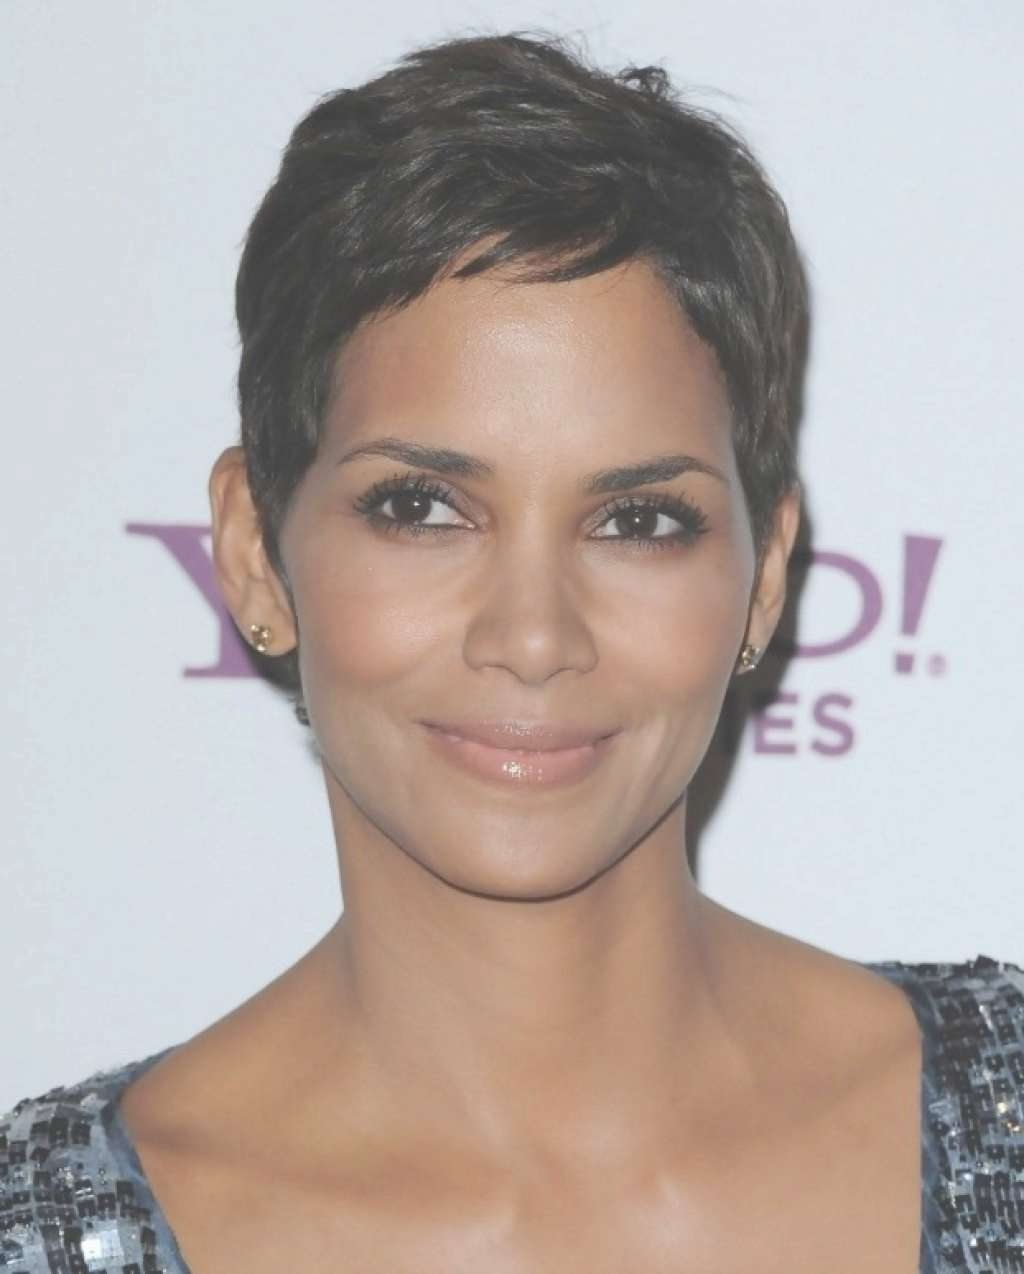 Pixie Haircut Black Women   2015 Trends   My Hair Life Throughout Most Recent Black Short Pixie Hairstyles (View 8 of 15)